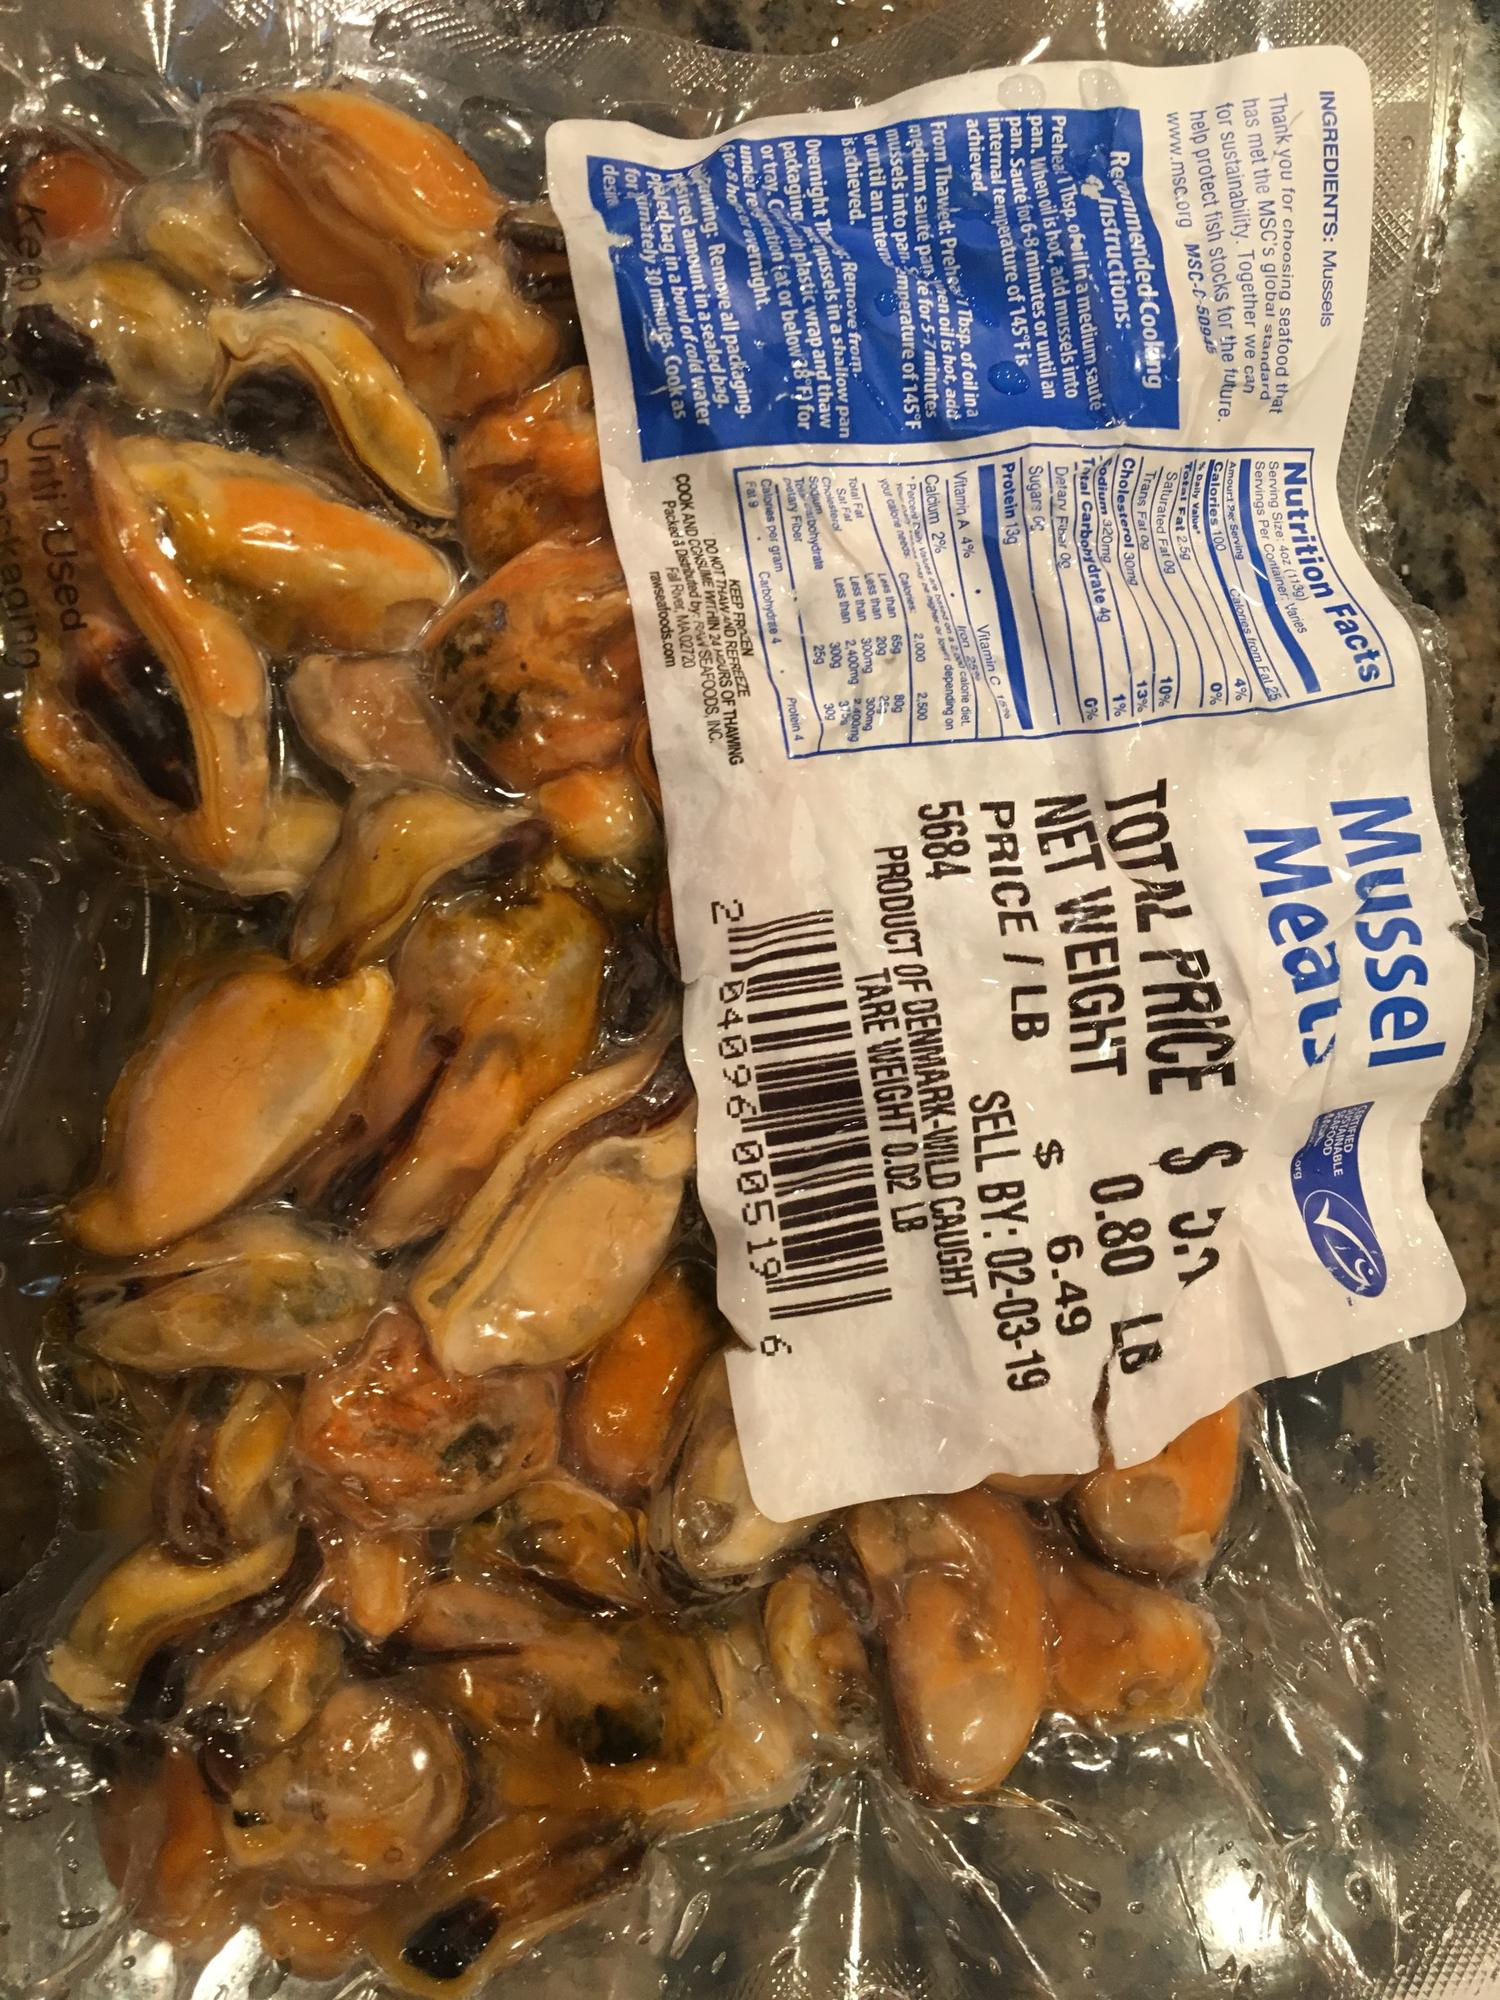 Frozen mussels, how to best use them